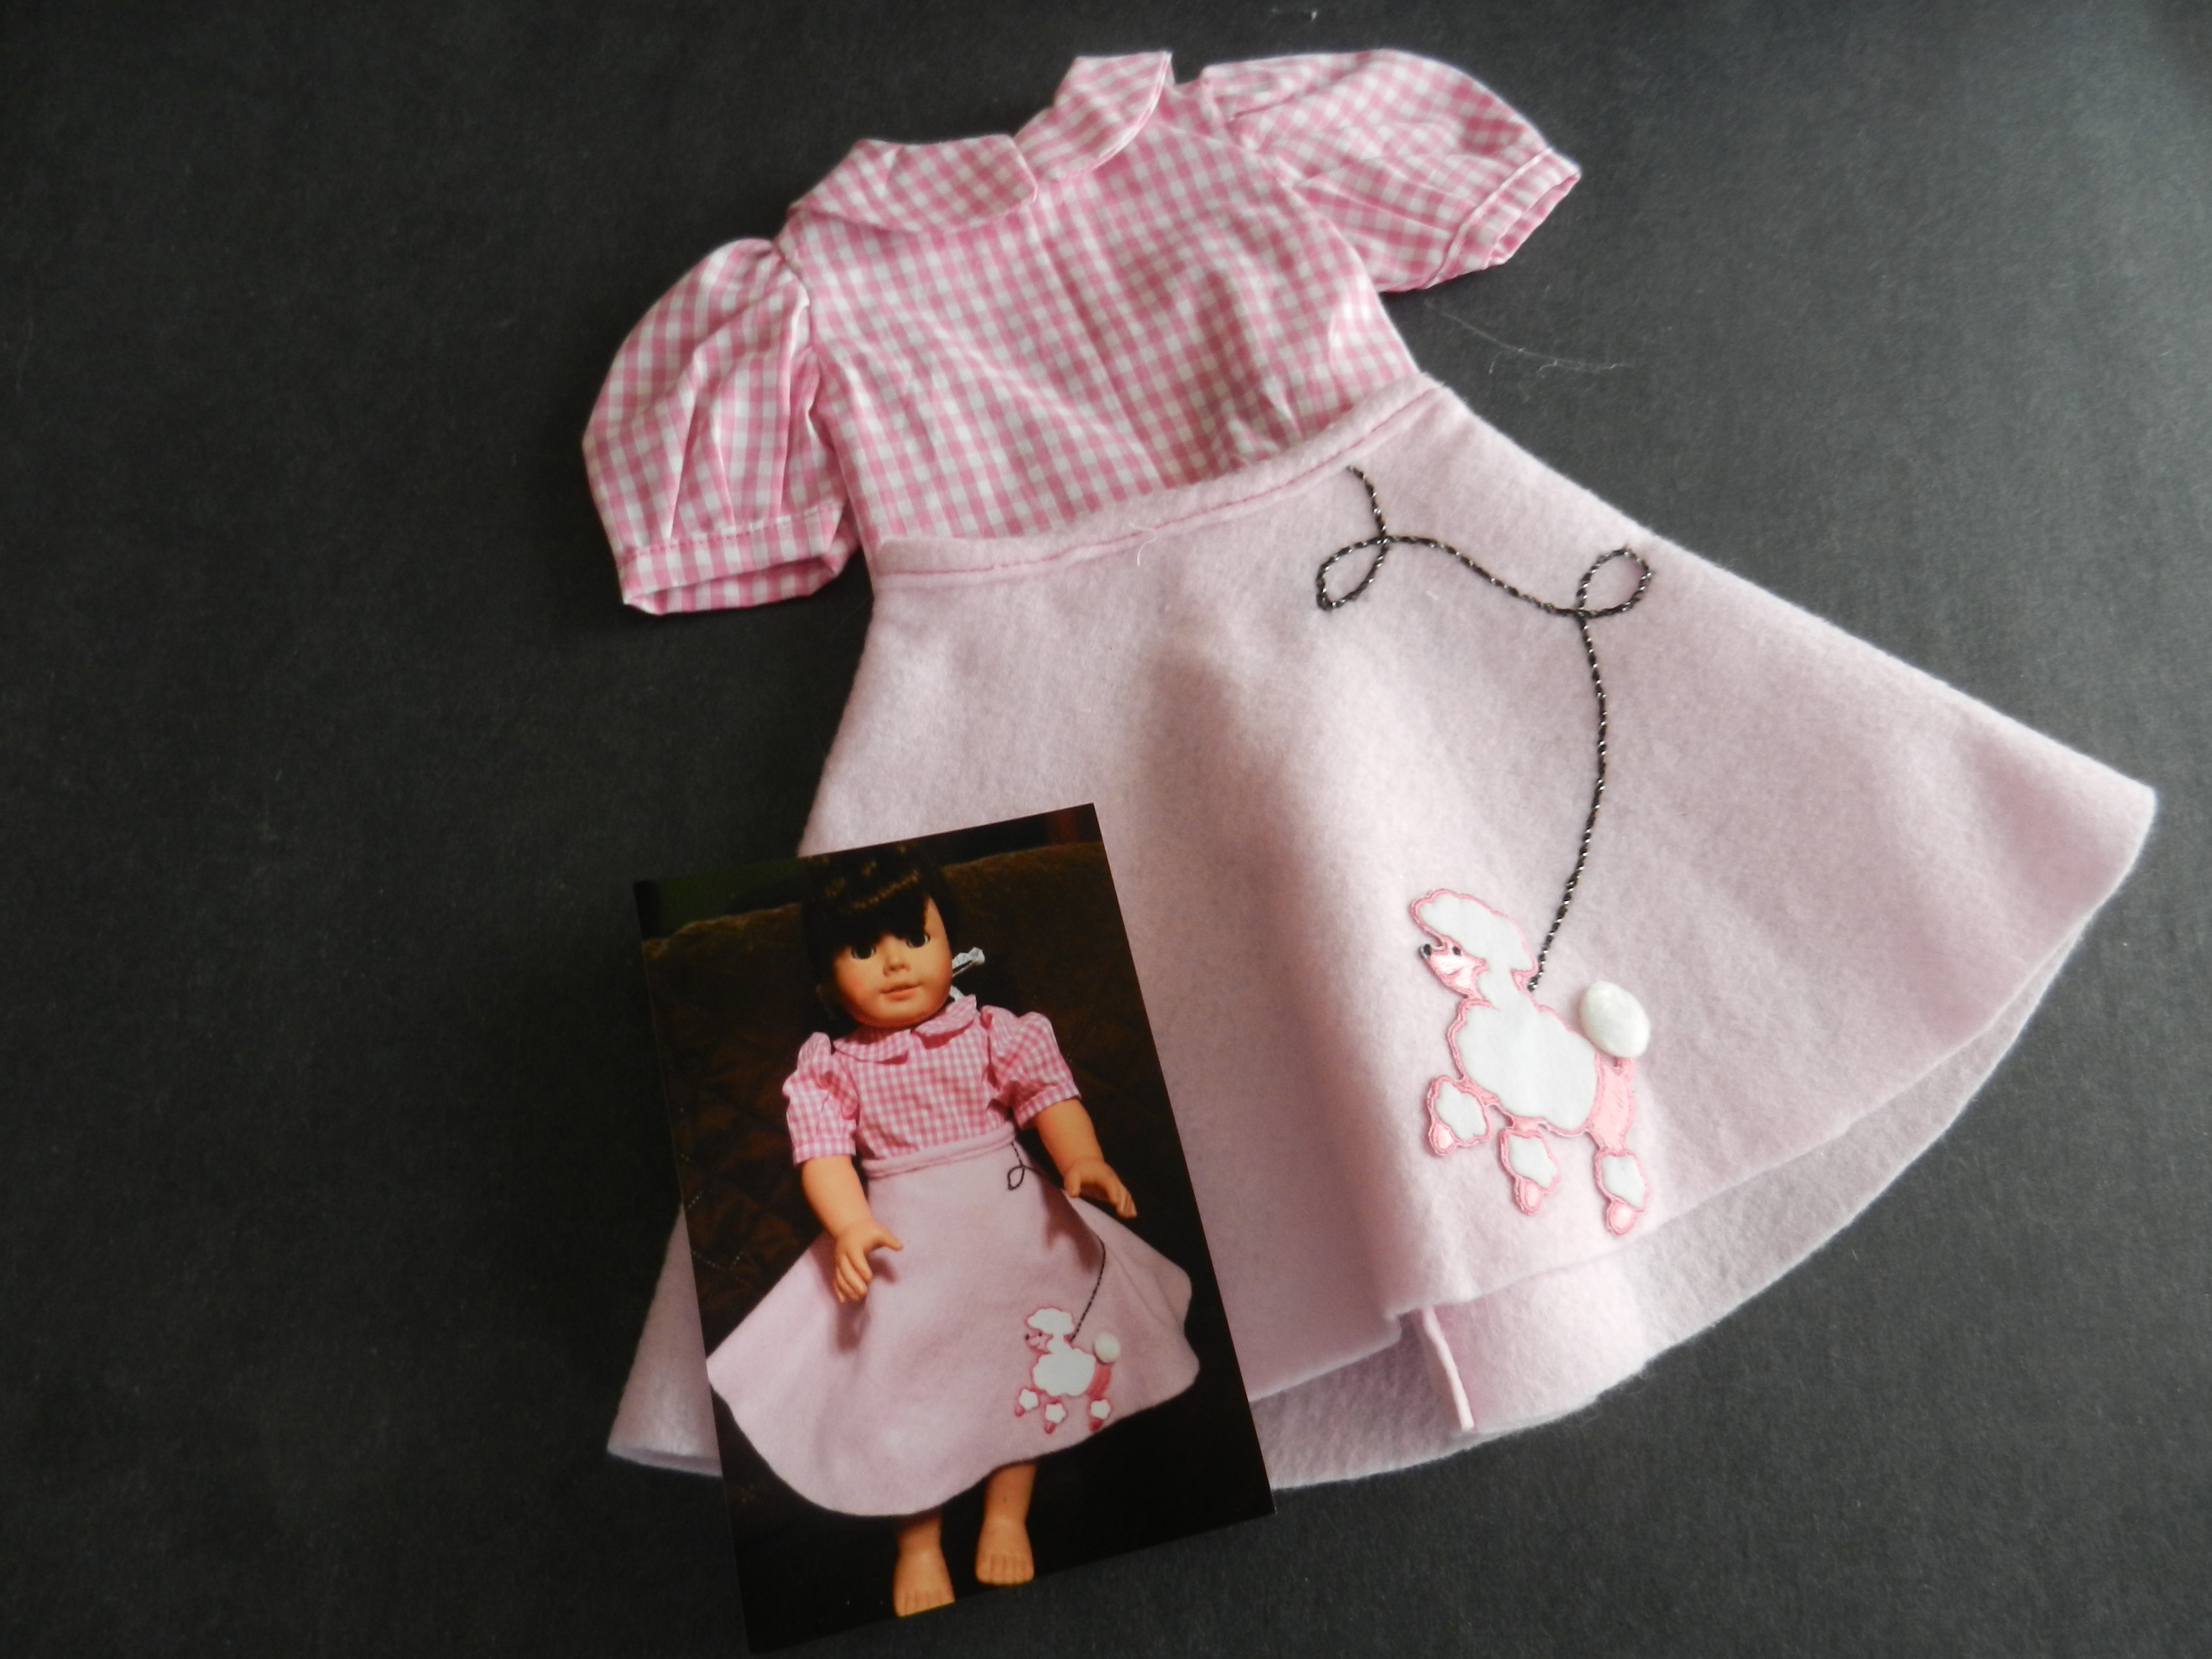 Doll Dress - doll not included